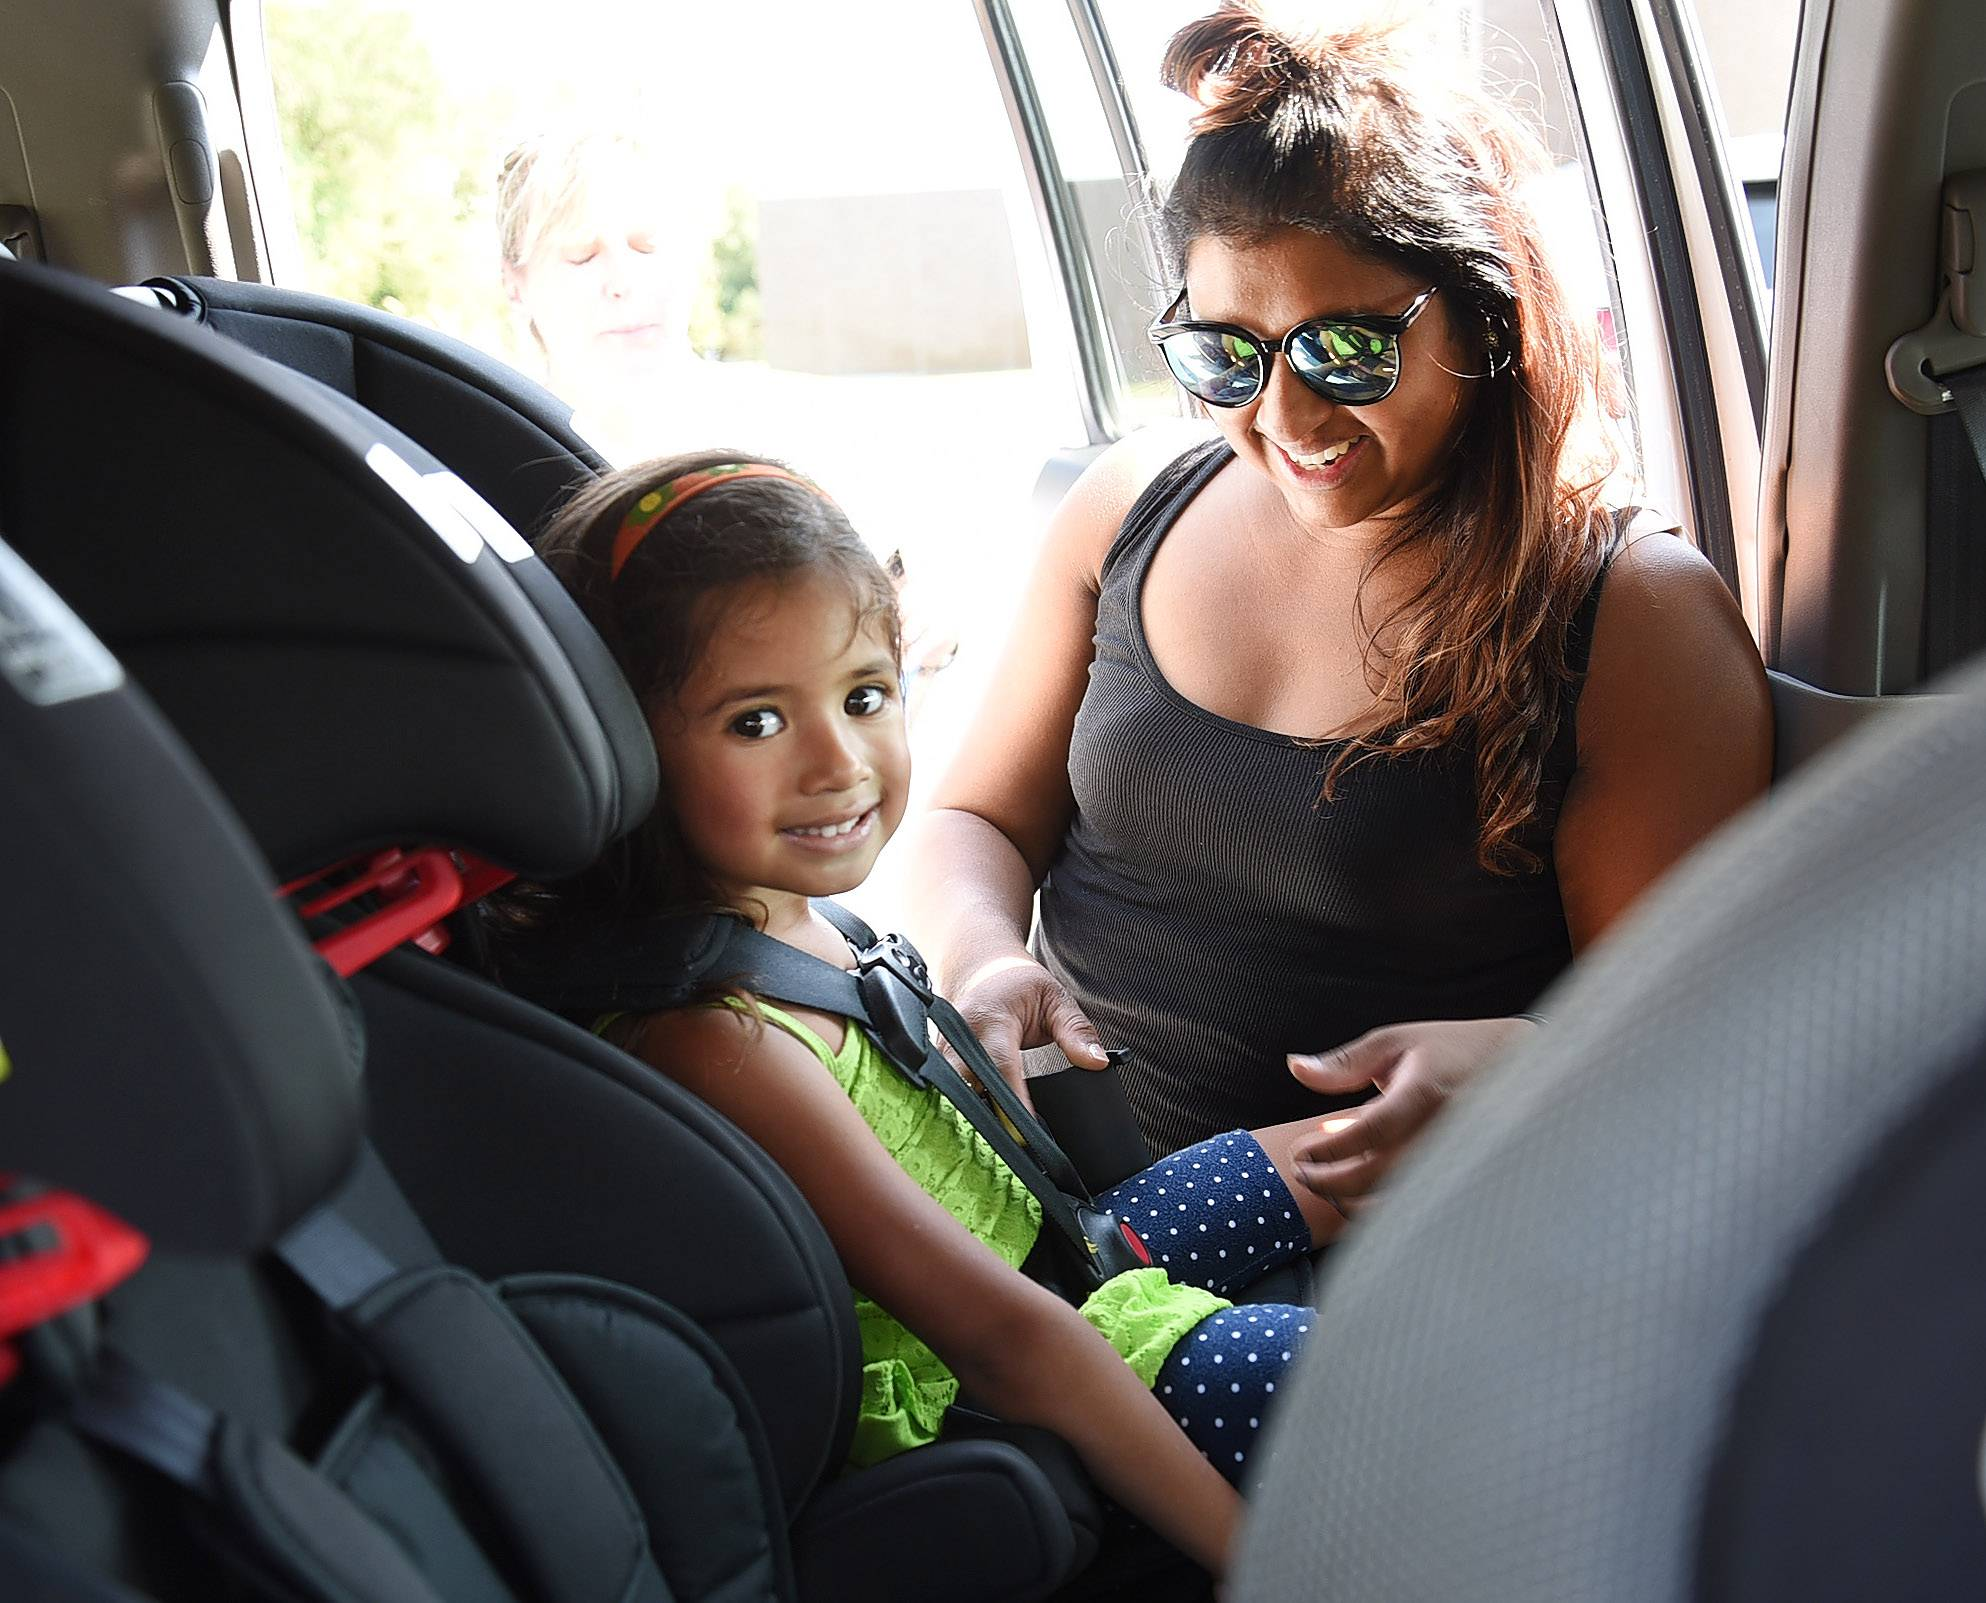 Rita Chavez and her daughter, 4-year-old Samantha, get their car seats inspected by Palatine Police Department Certified Child Safety Seat Inspectors.